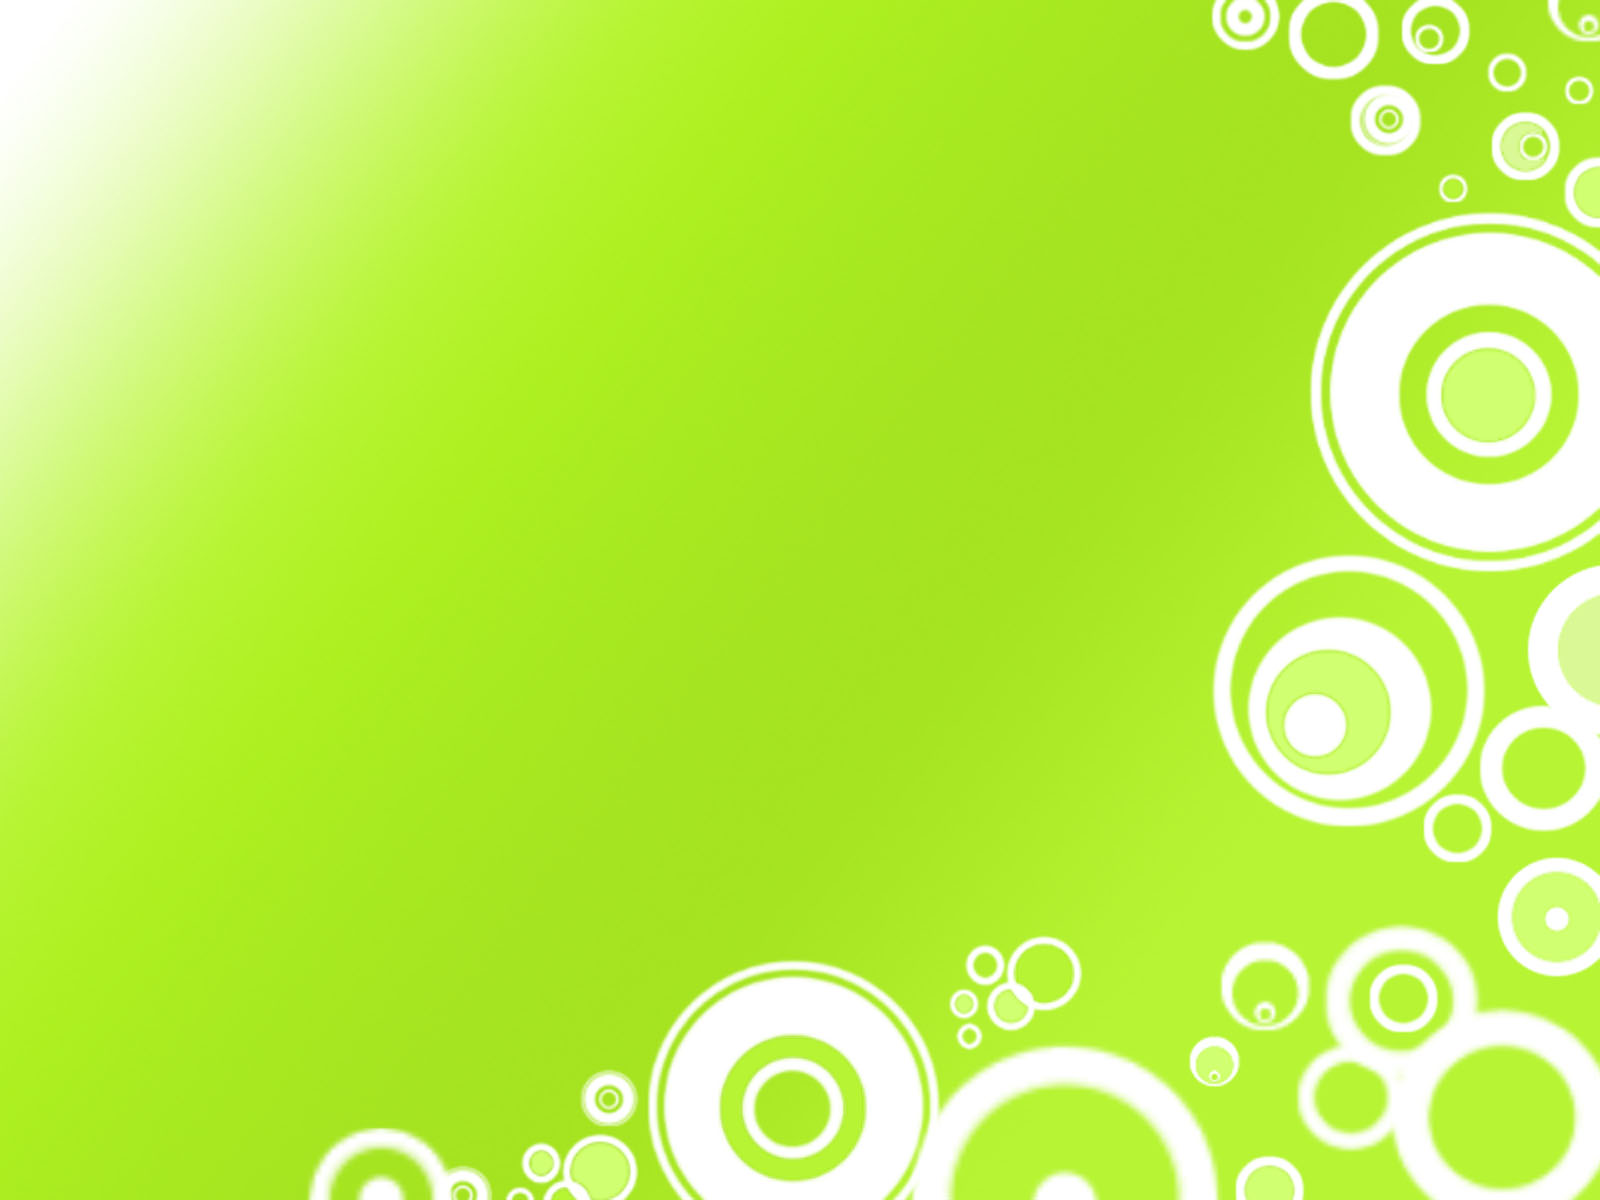 Green Wallpaper Green Wallpaper JPG